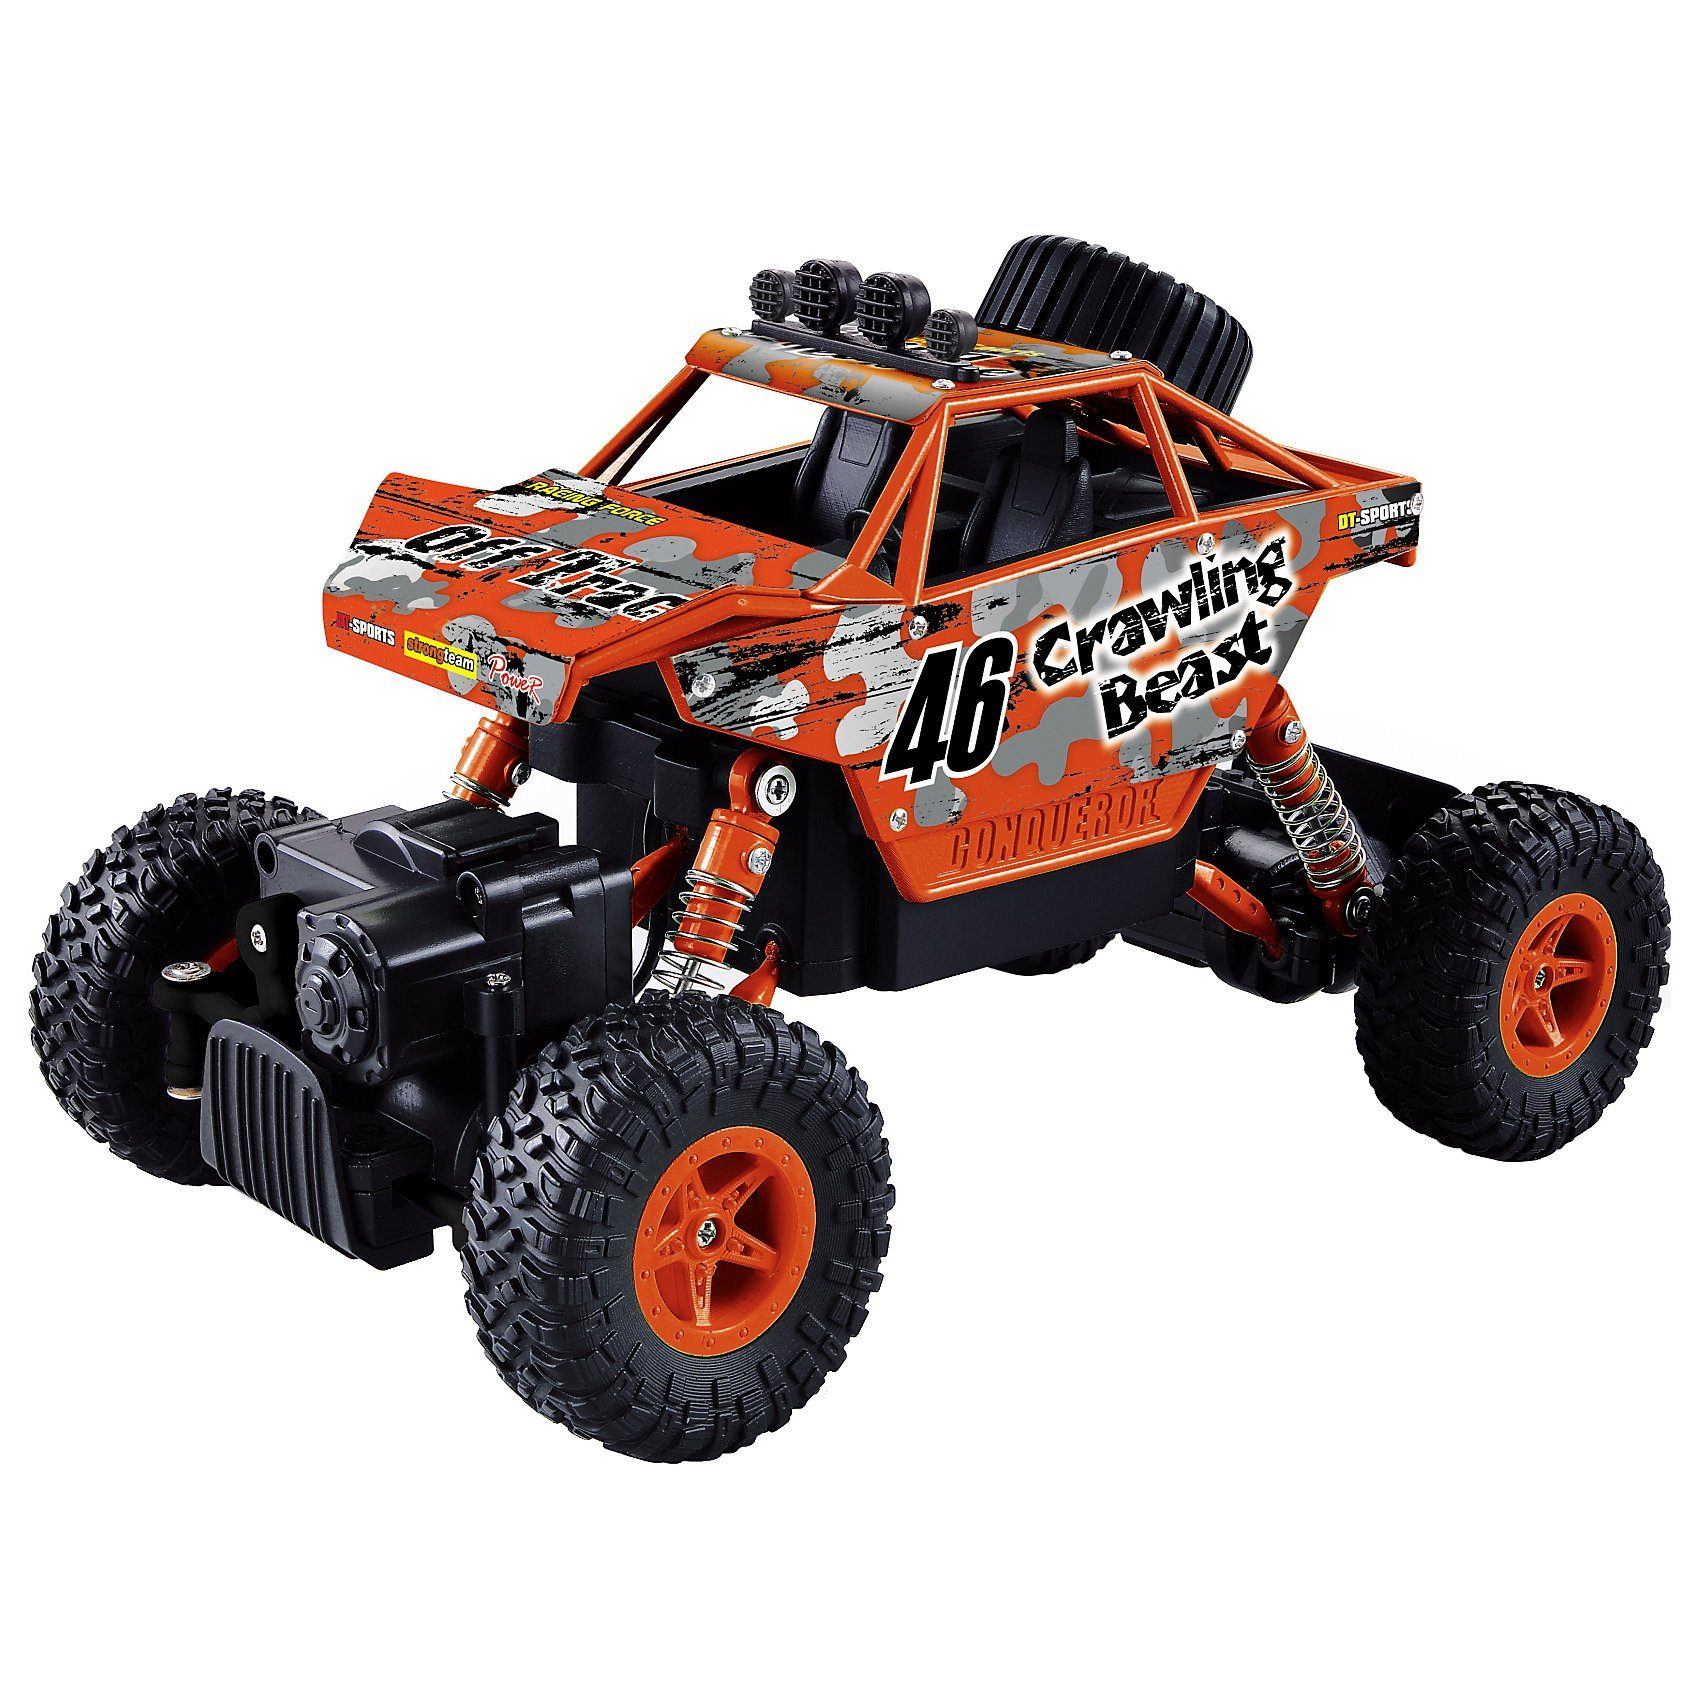 Dickie Toys RC Crawling Beast